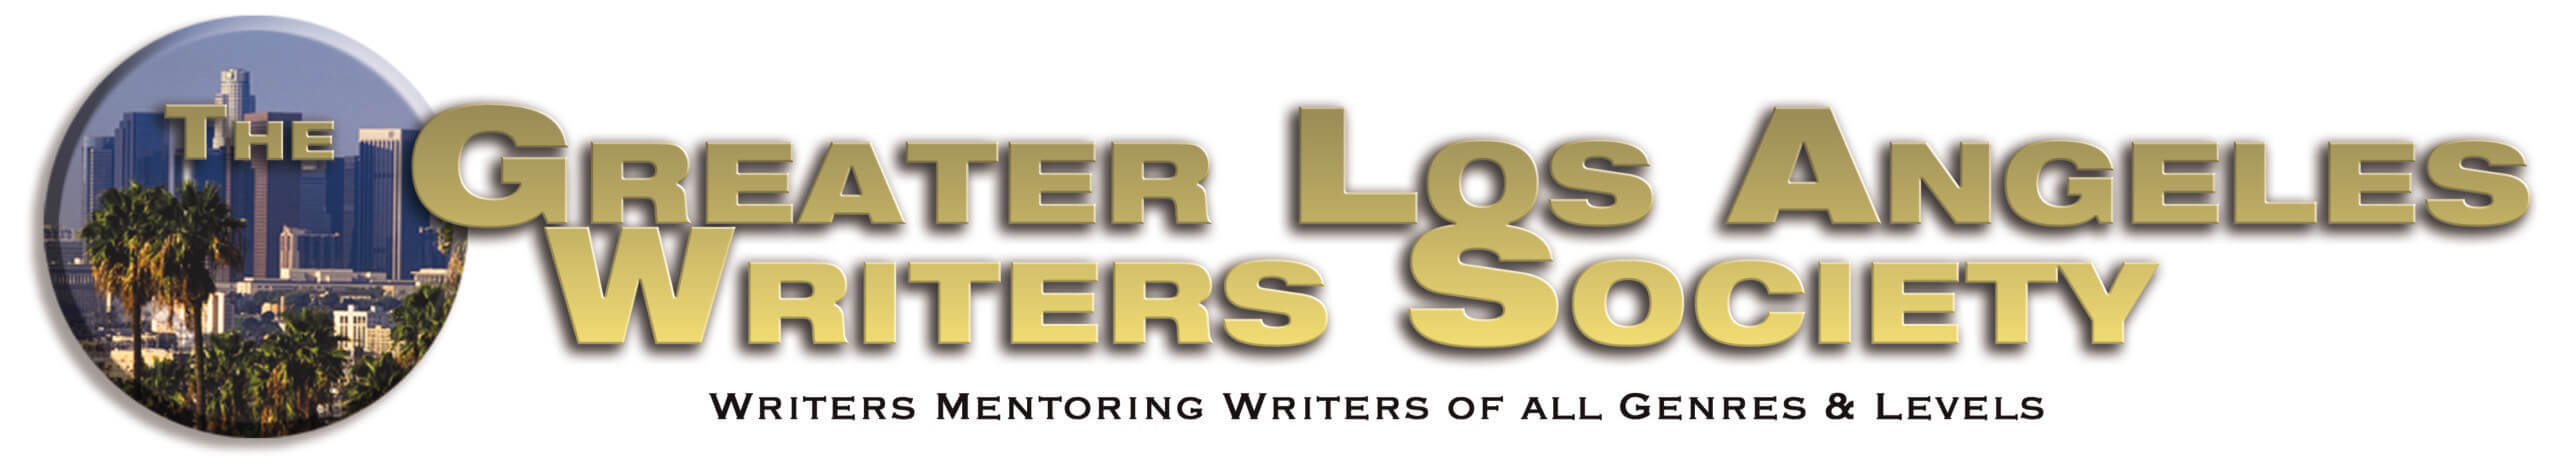 Greater Los Angeles Writers Society (GLAWS) Logo